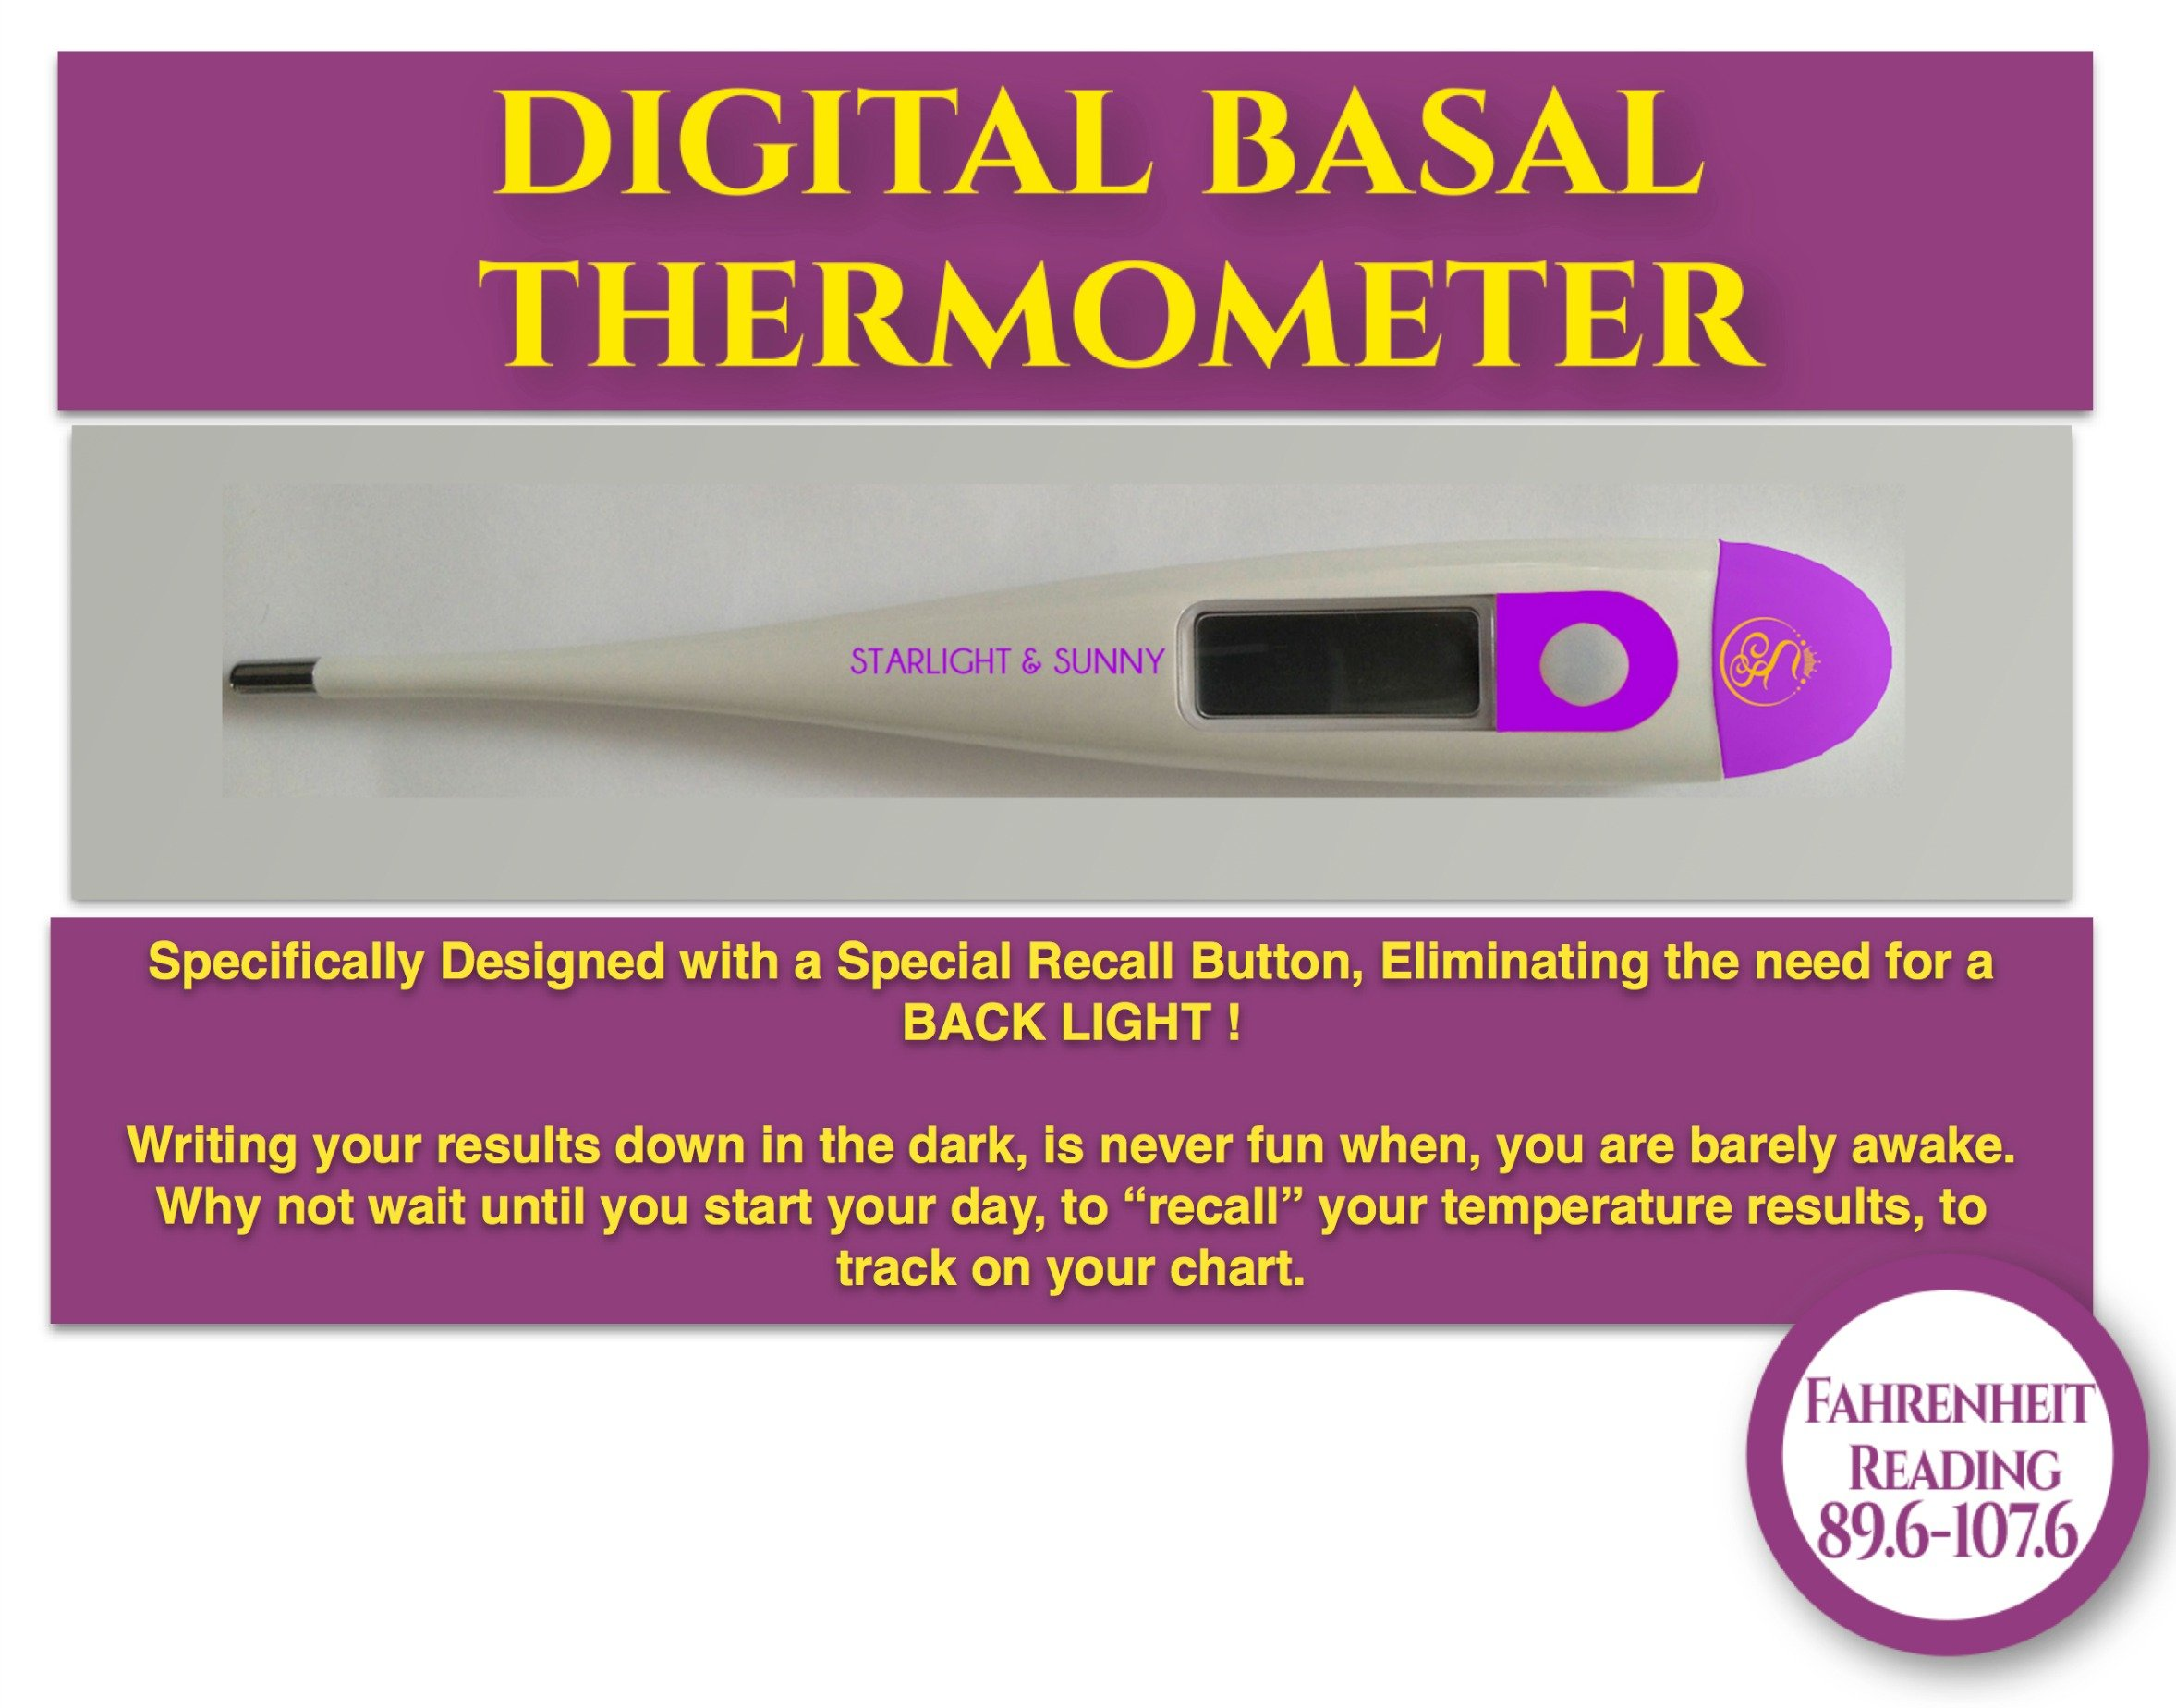 Starlight and Sunny Basal Thermometer Waterproof, 1/100th° Highly Sensitive, Perfect Companion for Ovulation, Fertility Calculator for Body Temperature to Become a Pregnant Woman